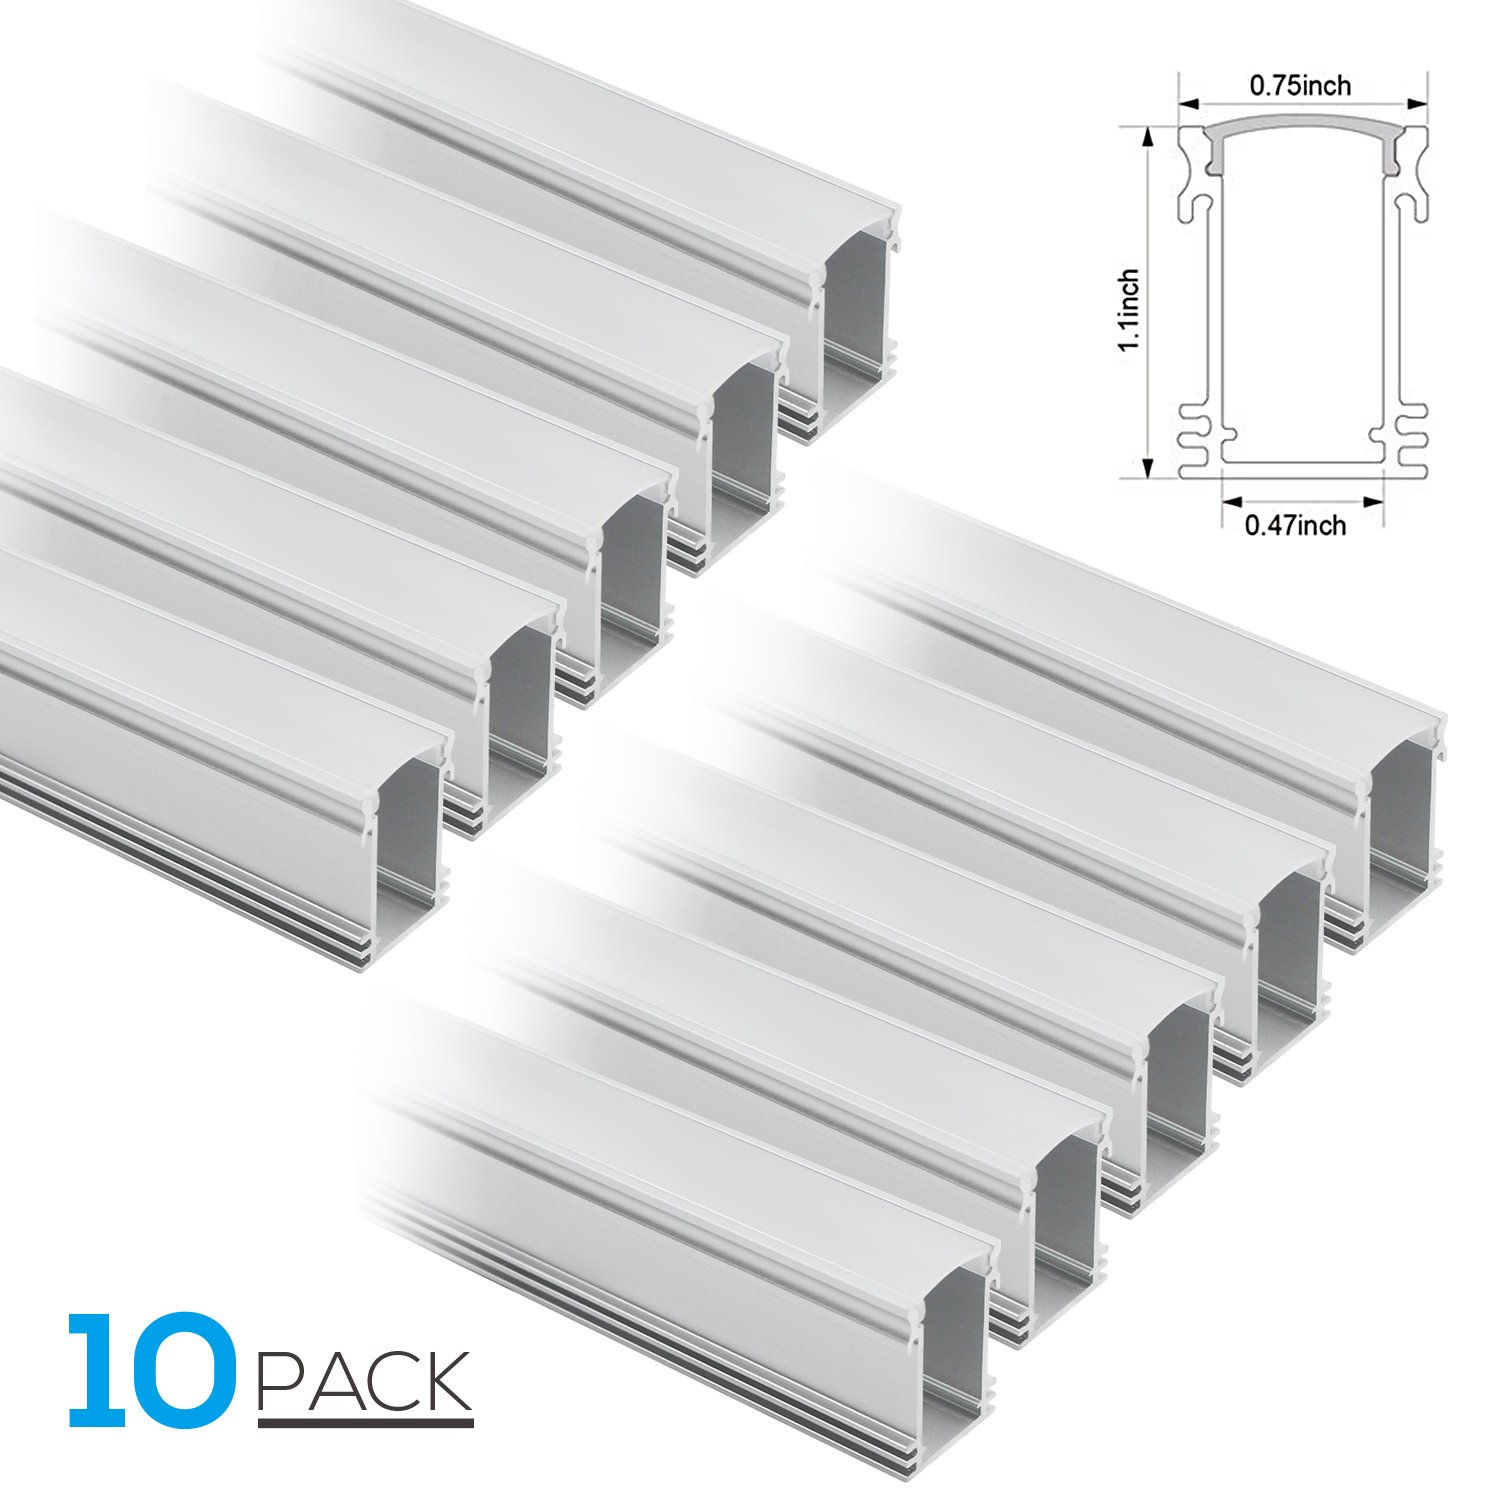 TORCHSTAR 1M/3.3ft U-Shape Aluminum Channel for flex/hard LED Strip Lights, Aluminum Profile w/Oyster White Cover, End Caps, Mounting Clips - Emulational Neon Effect - U01,Pack of 10